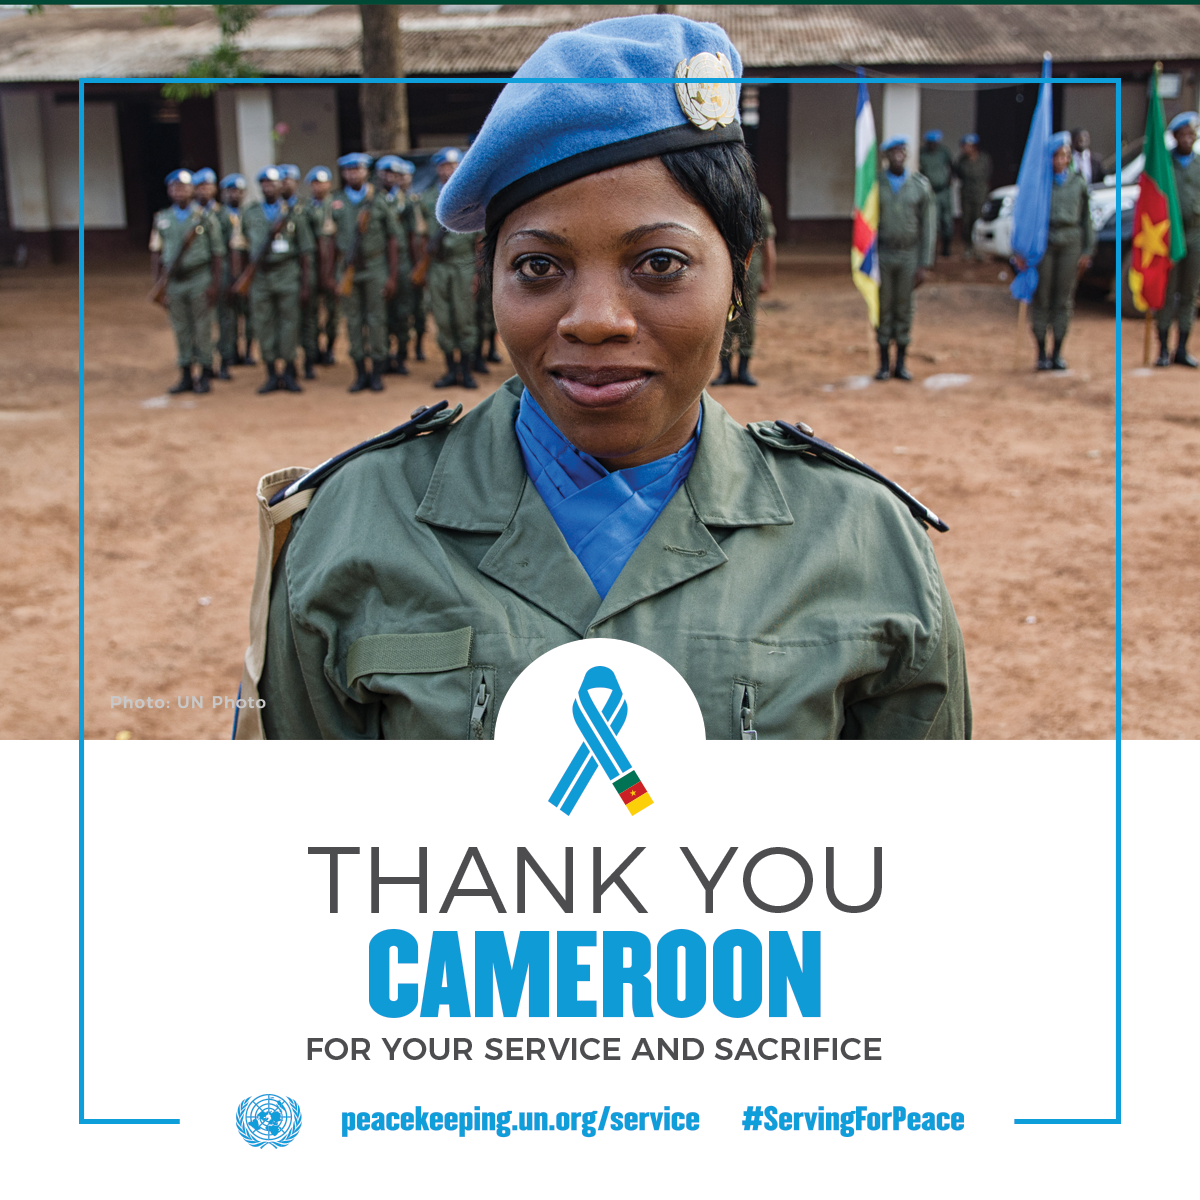 A female peacekeeper from Cameroon